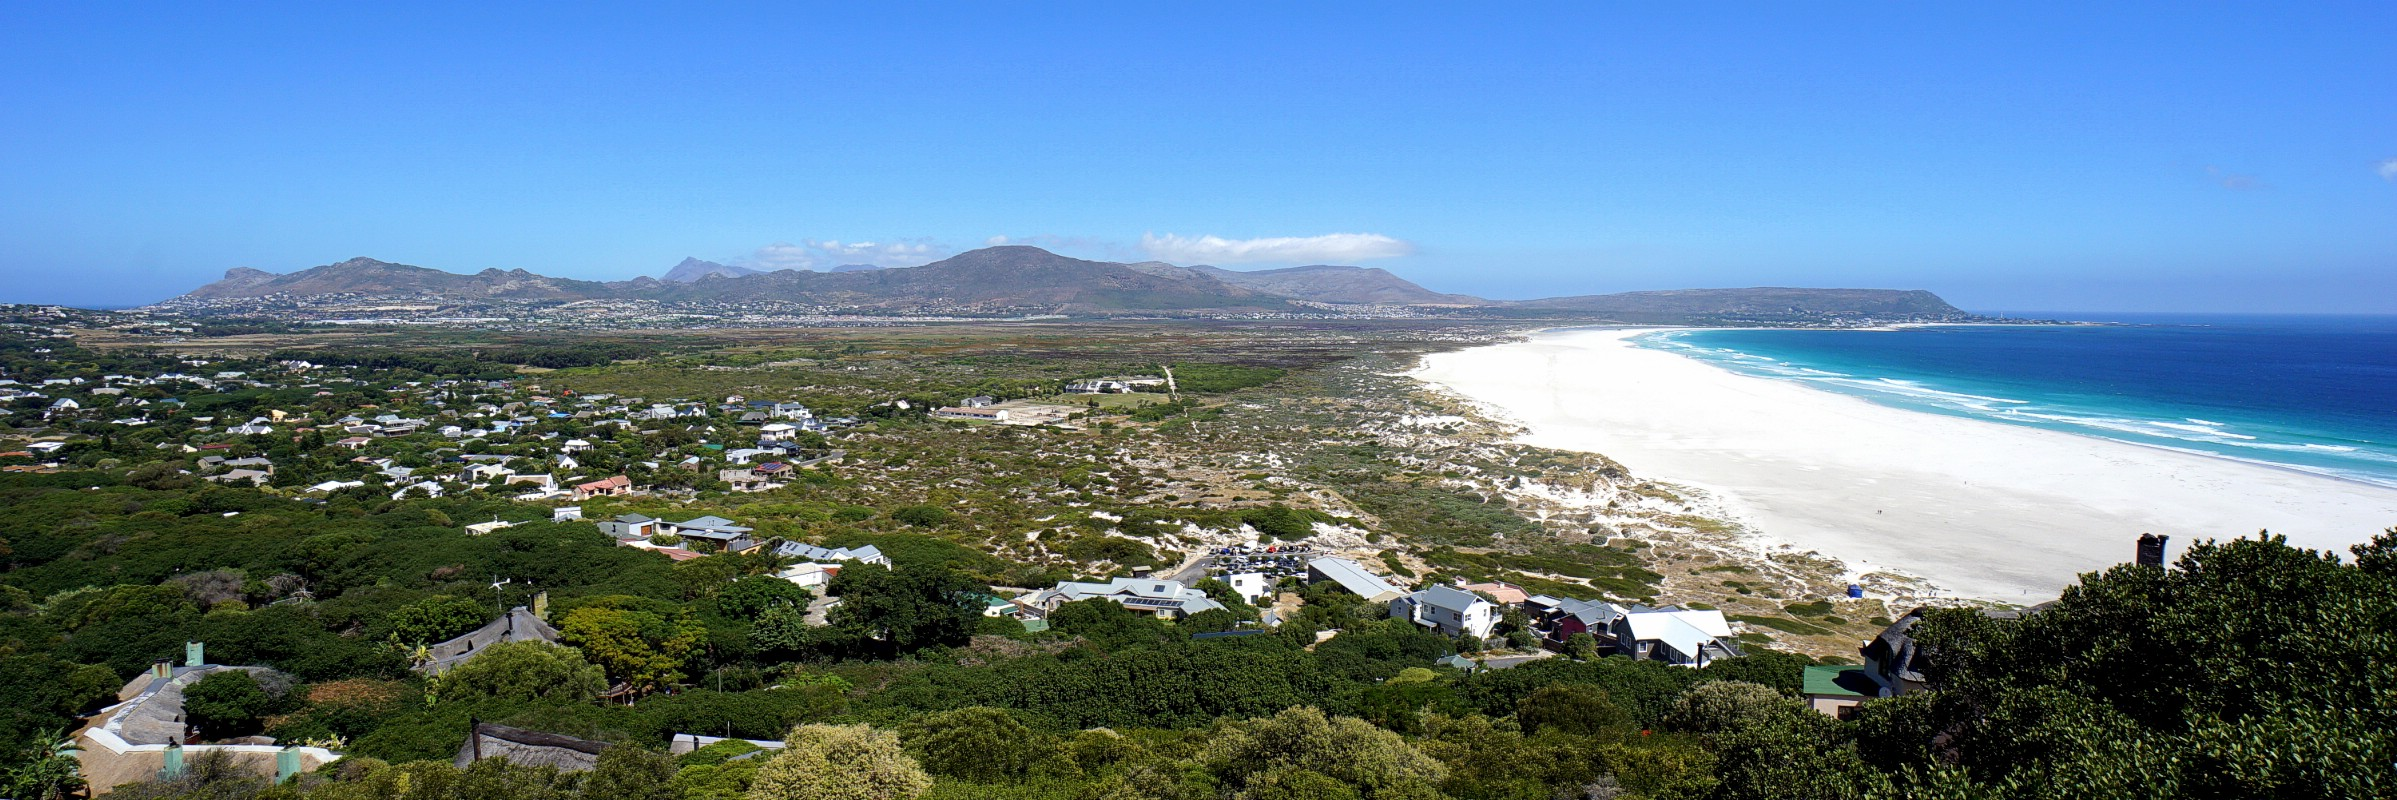 A panorama over Noordhoek Beach & Chapman's Peak as seen from the end of Chapman's Peak Drive, Cape Peninsula, Western Cape, South Africa. February 17, 2017.